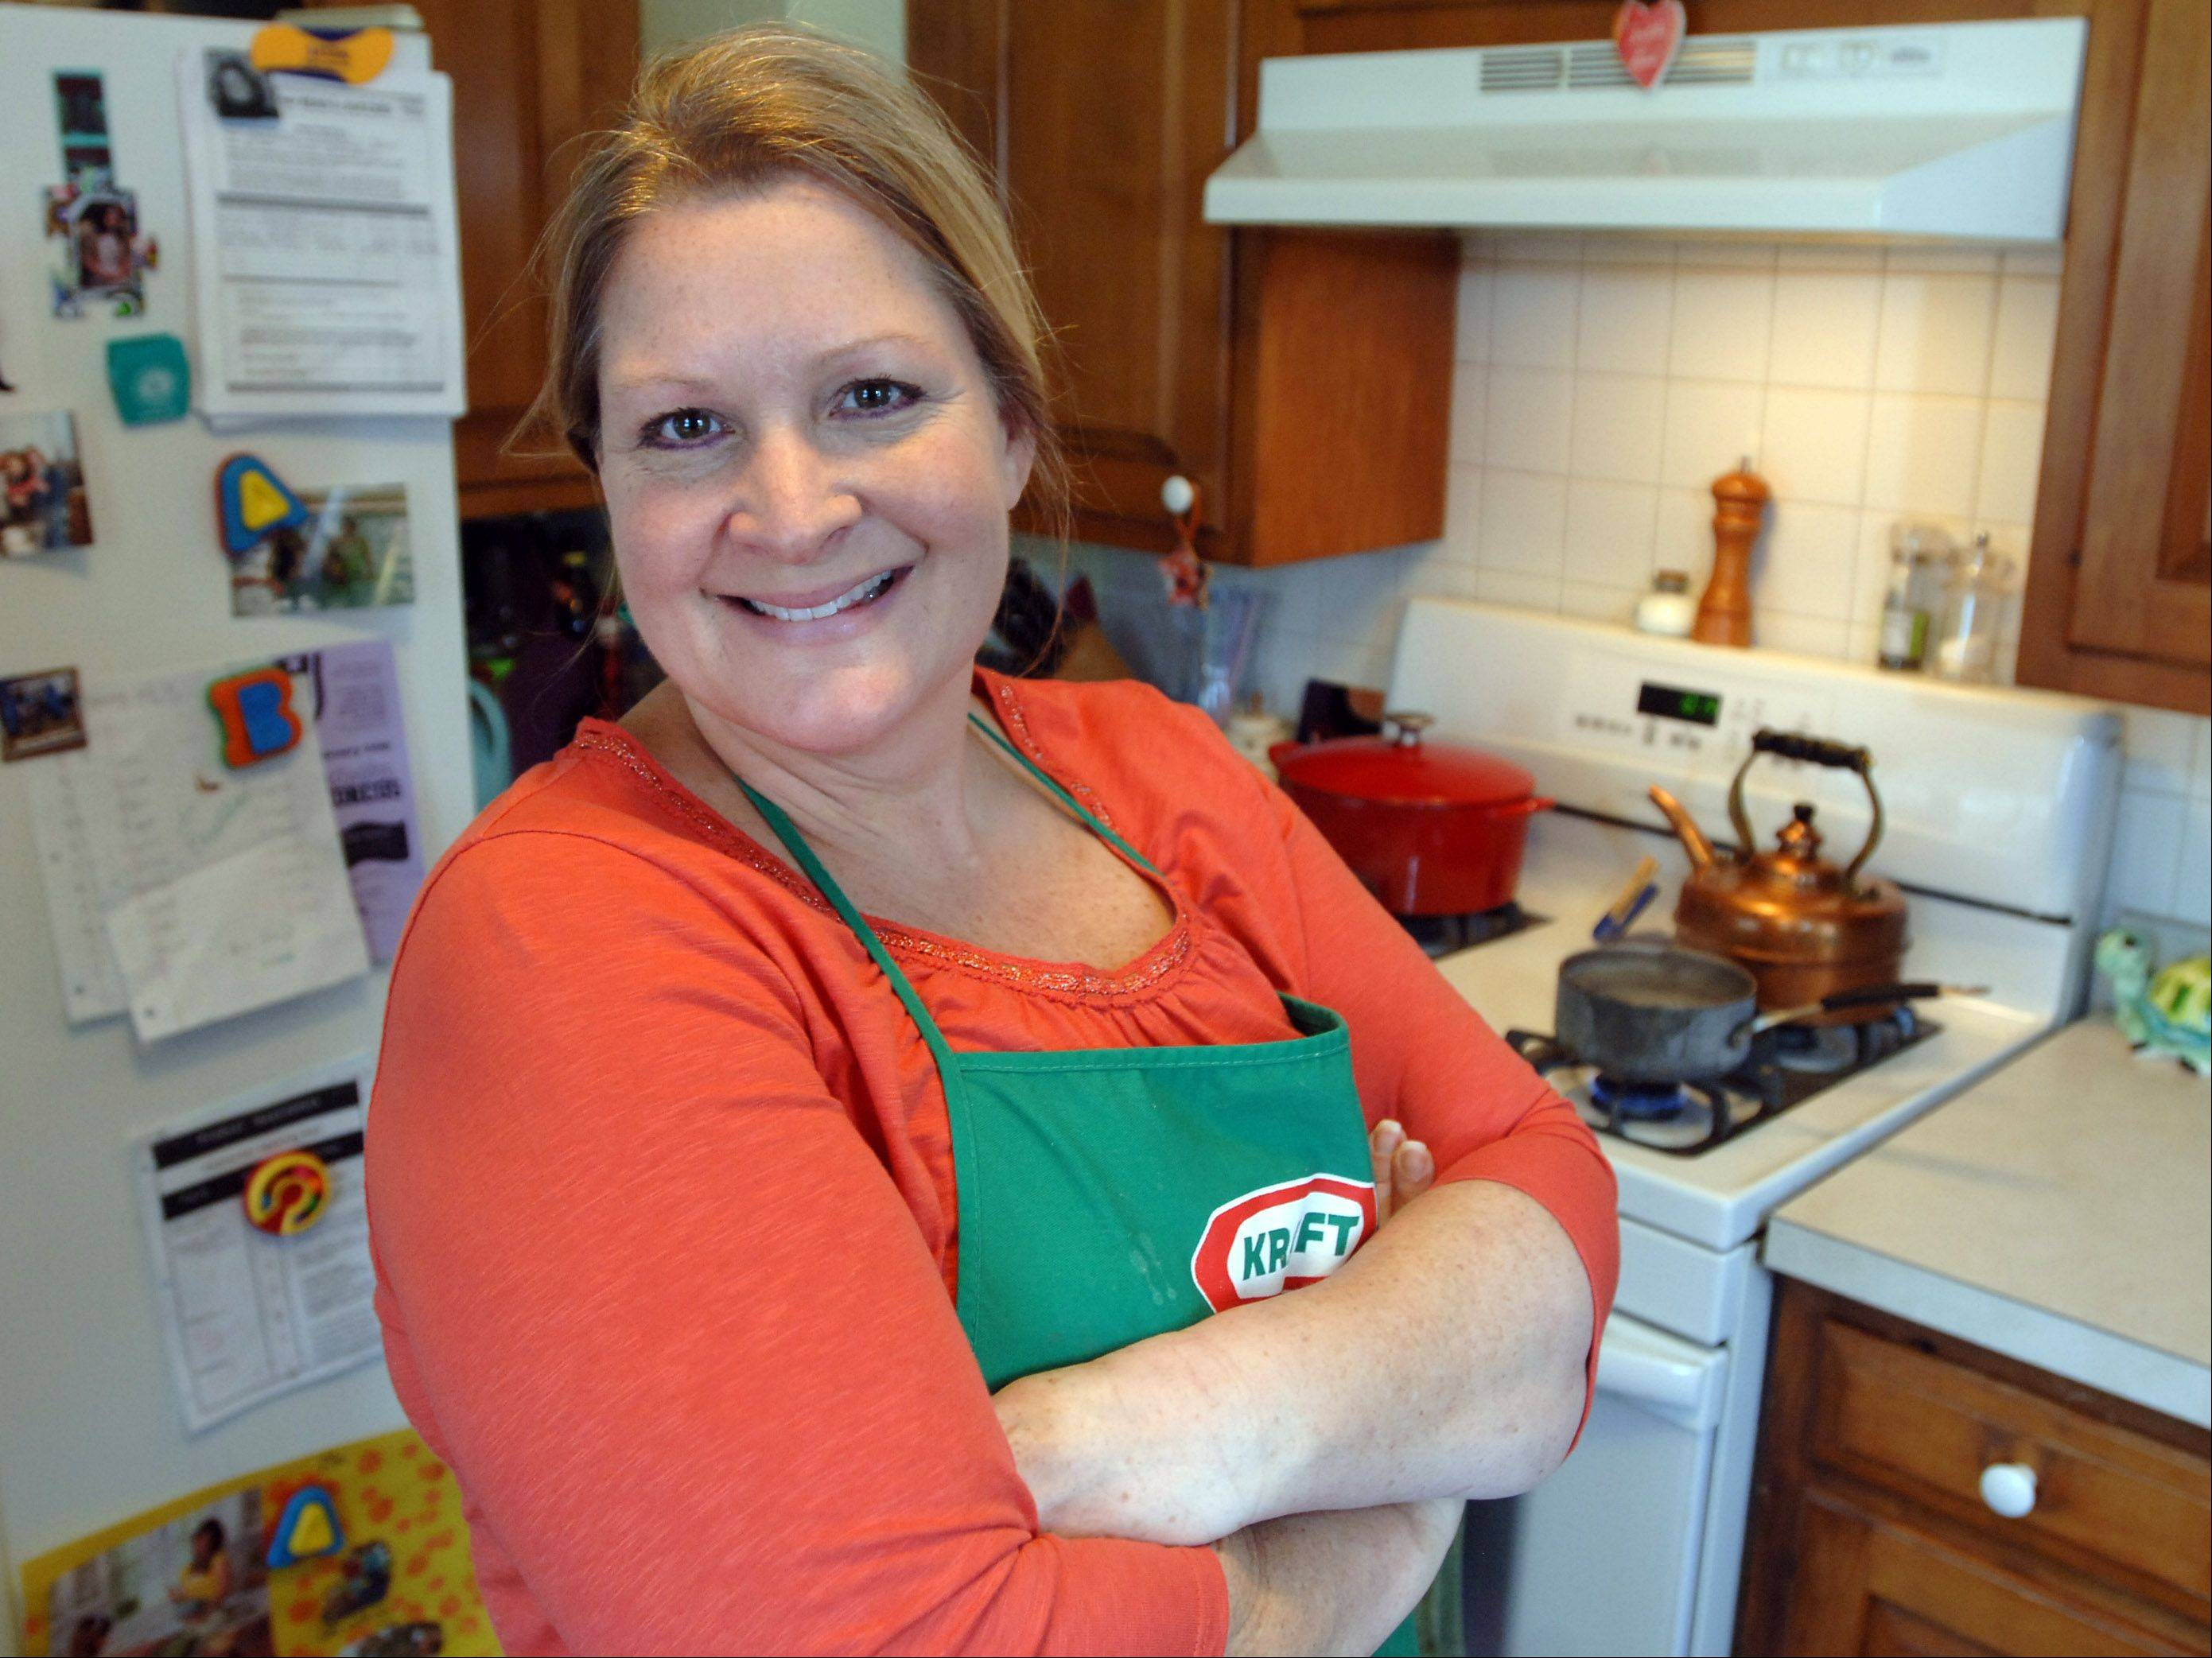 Jackie Burke of Lake Zurich takes recipe inspiration from Food Network chefs and from her sister, a chef and culinary instructor.